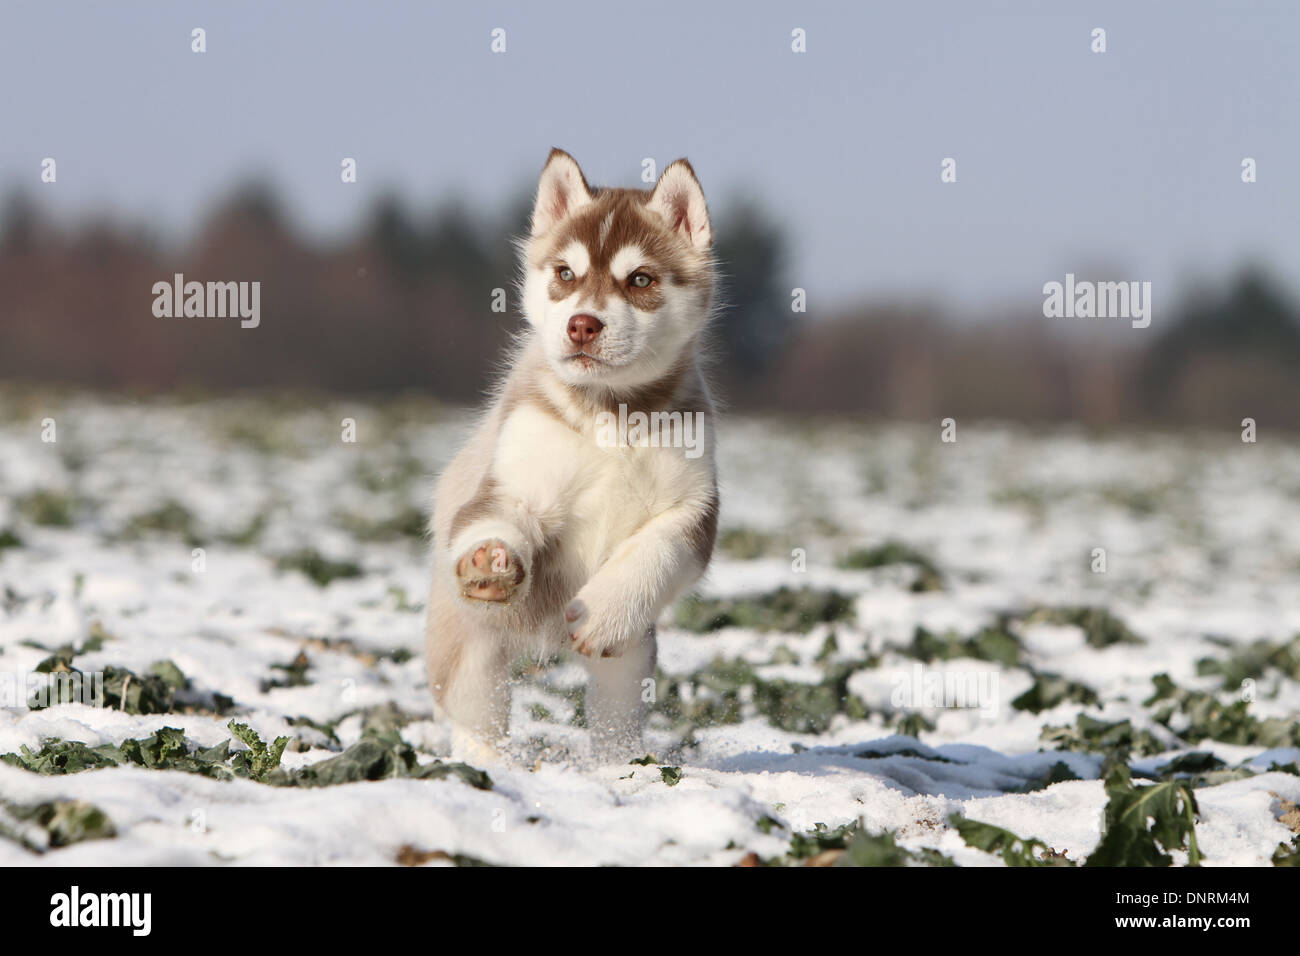 Dog Siberian Husky Puppy Running In The Snow Stock Photo 65059588